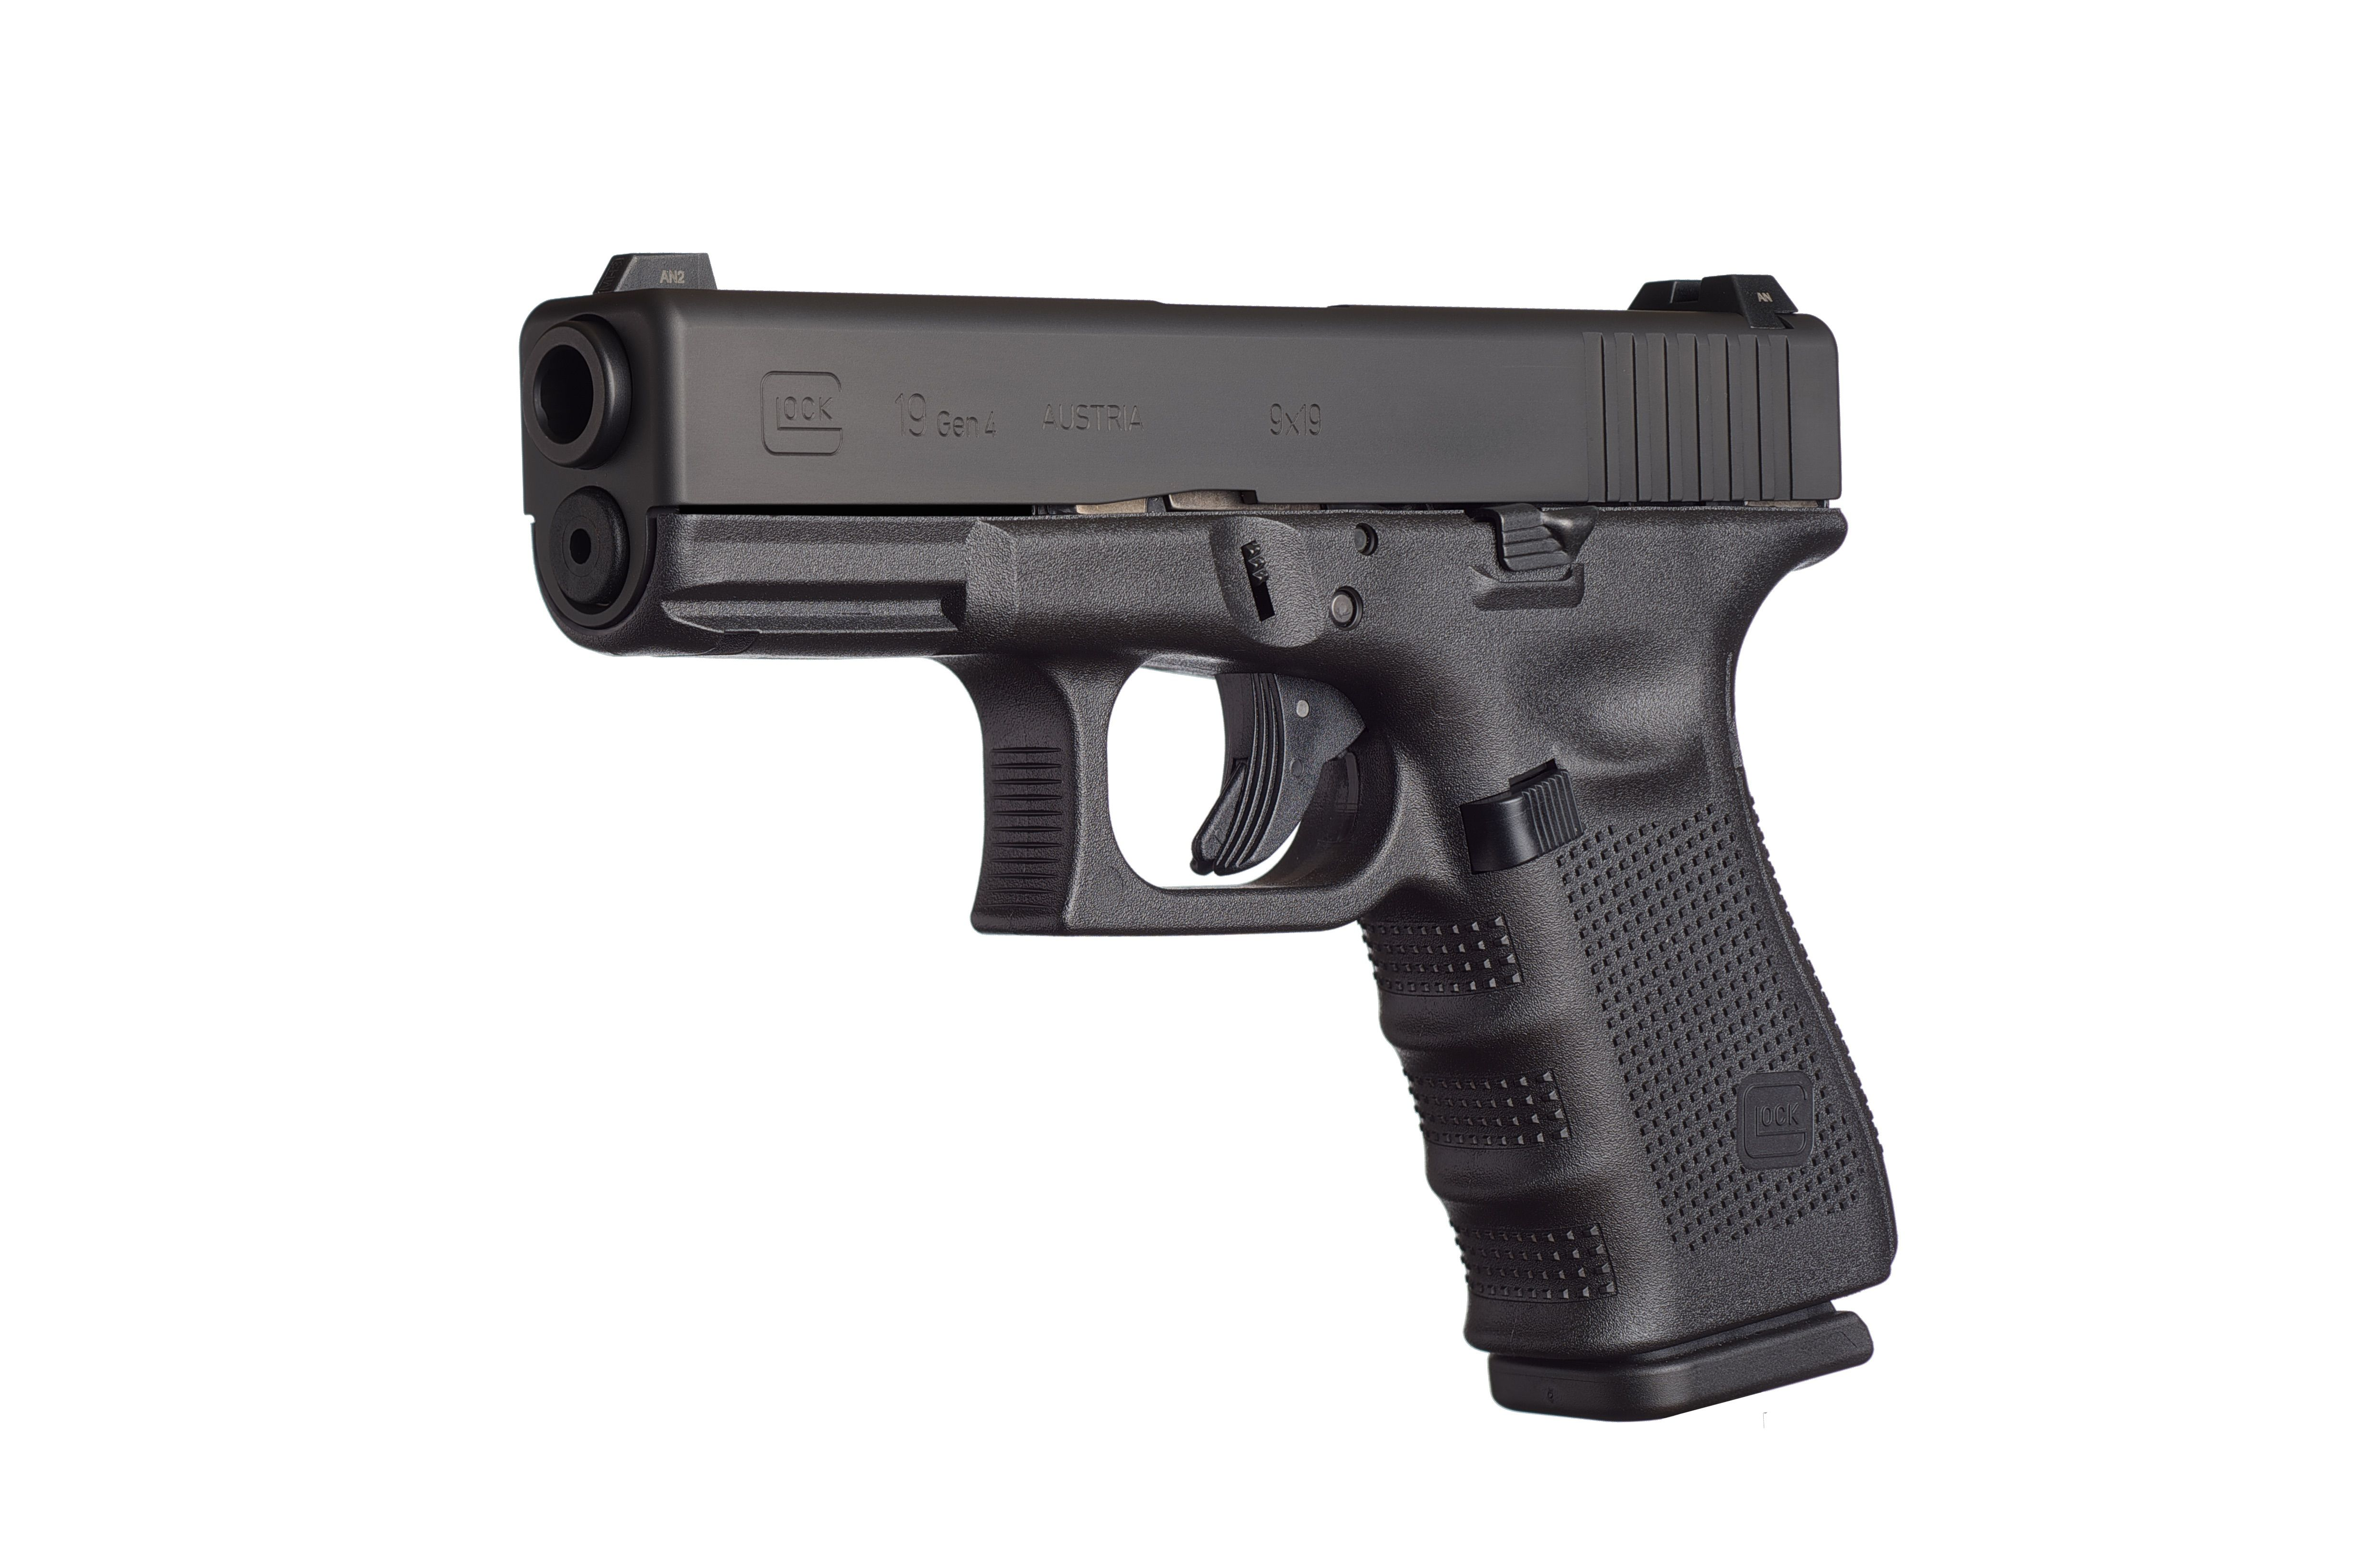 Seven Things You Didn't Know About the Glock 19, Glock 19 Gen 4.